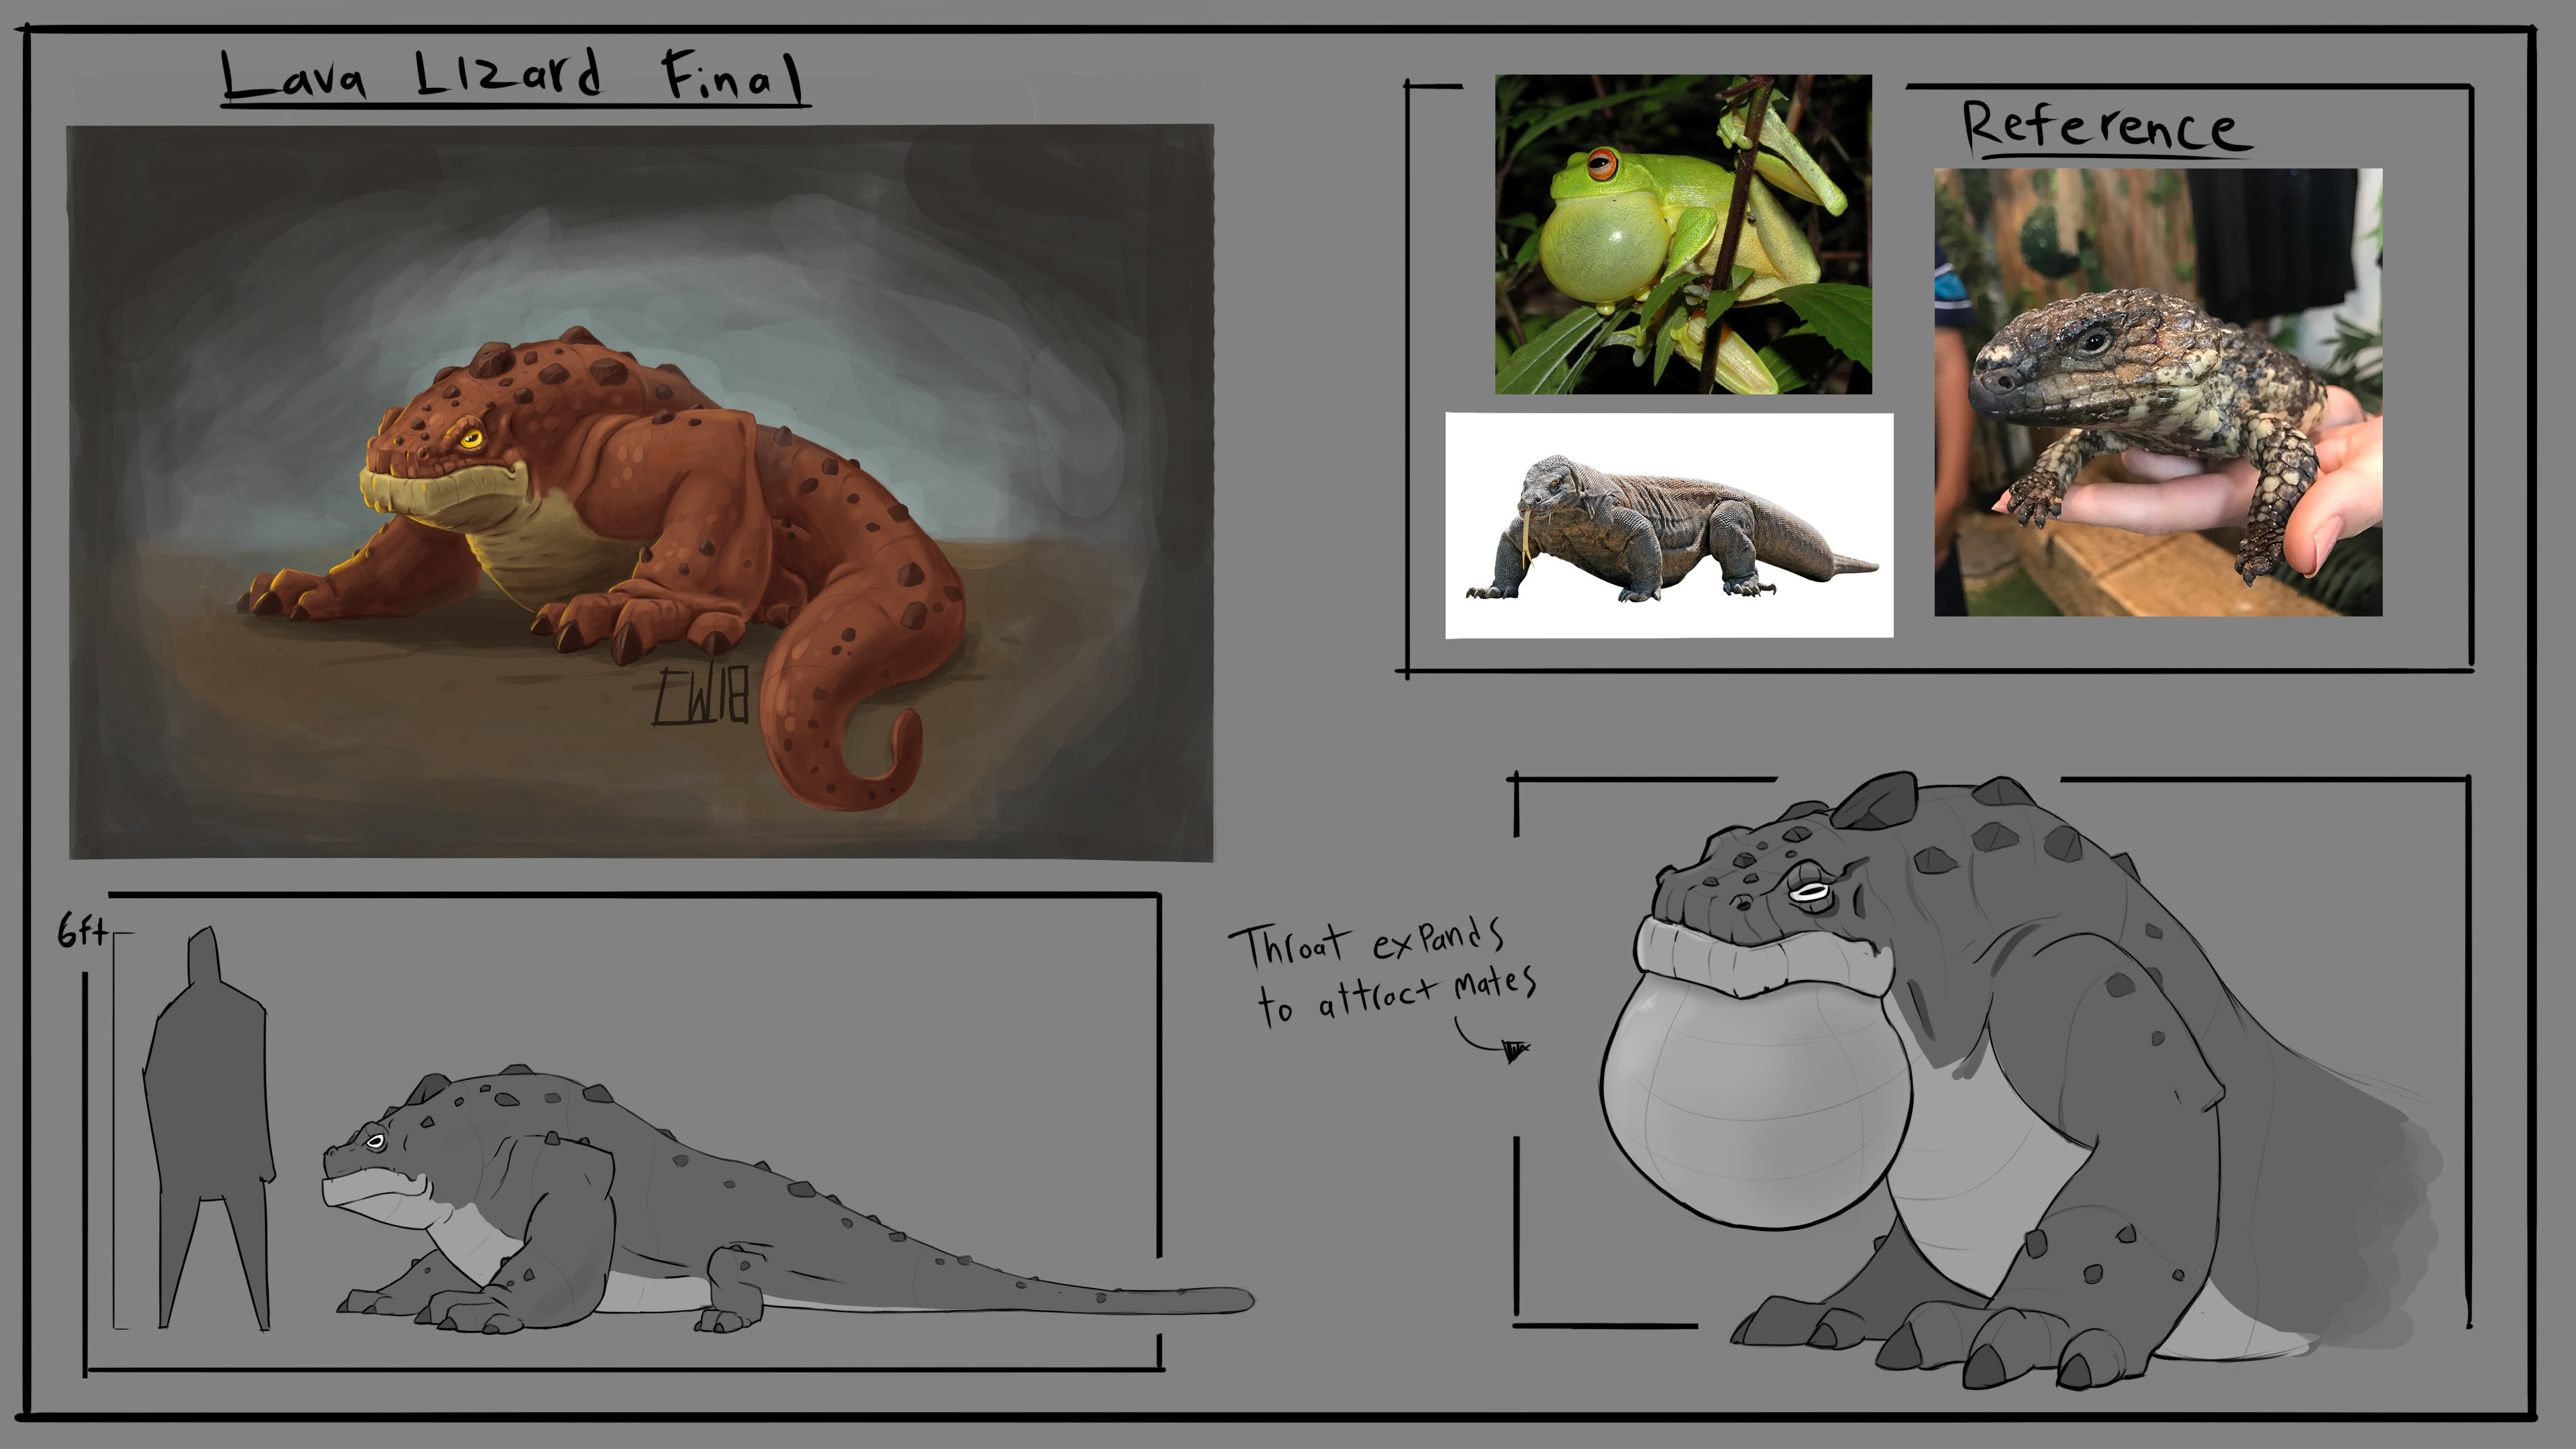 Here is the final along with some reference i used for the final design. I liked the idea of the rocky spikes from the variations and chose the colors that best fitted a creature living near lava.